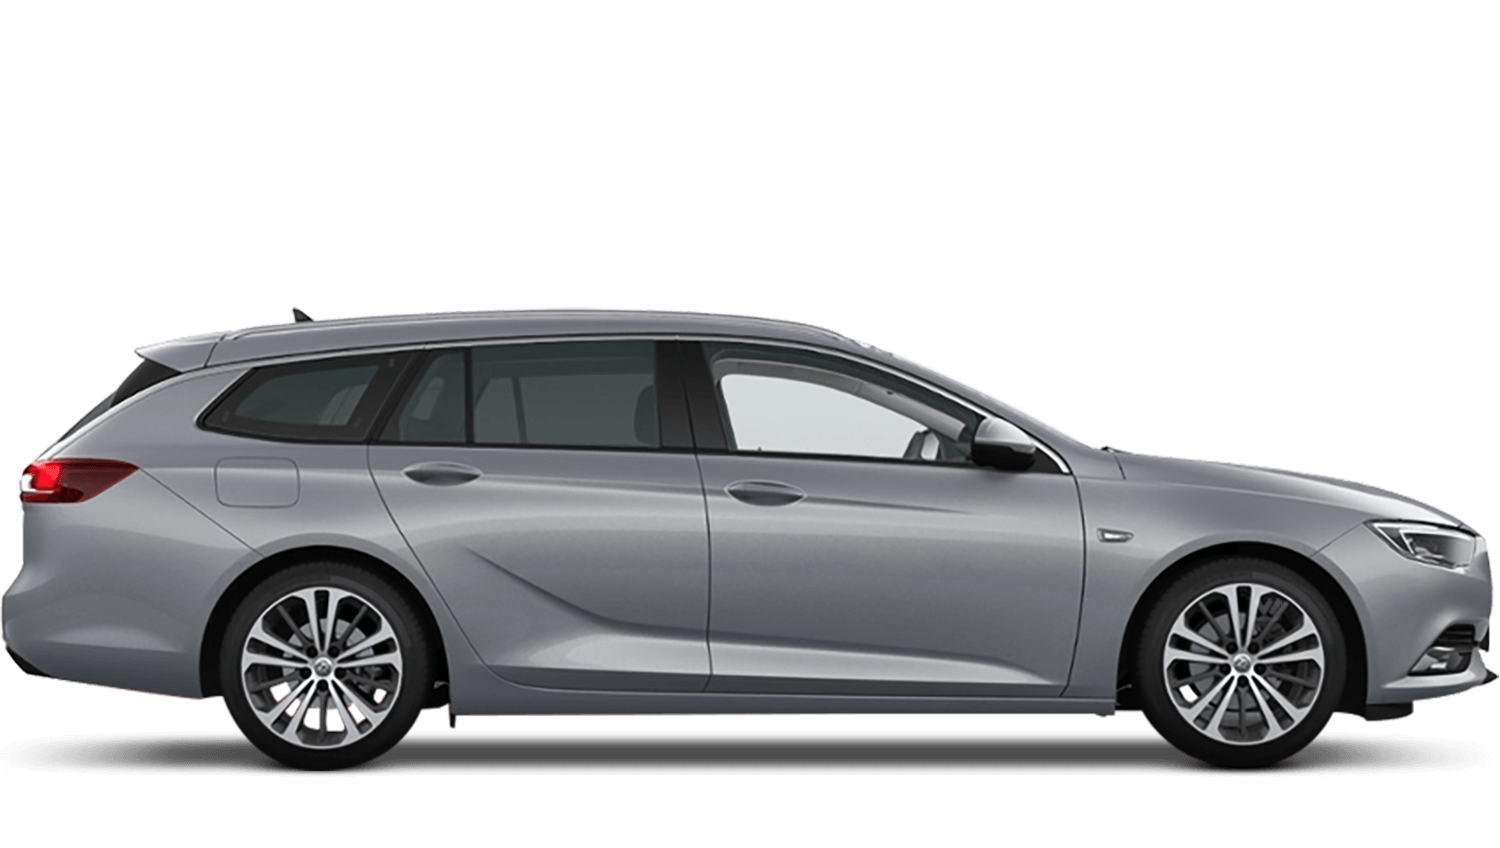 Satin Steel Grey (Metallic) Vauxhall Insignia Sports Tourer